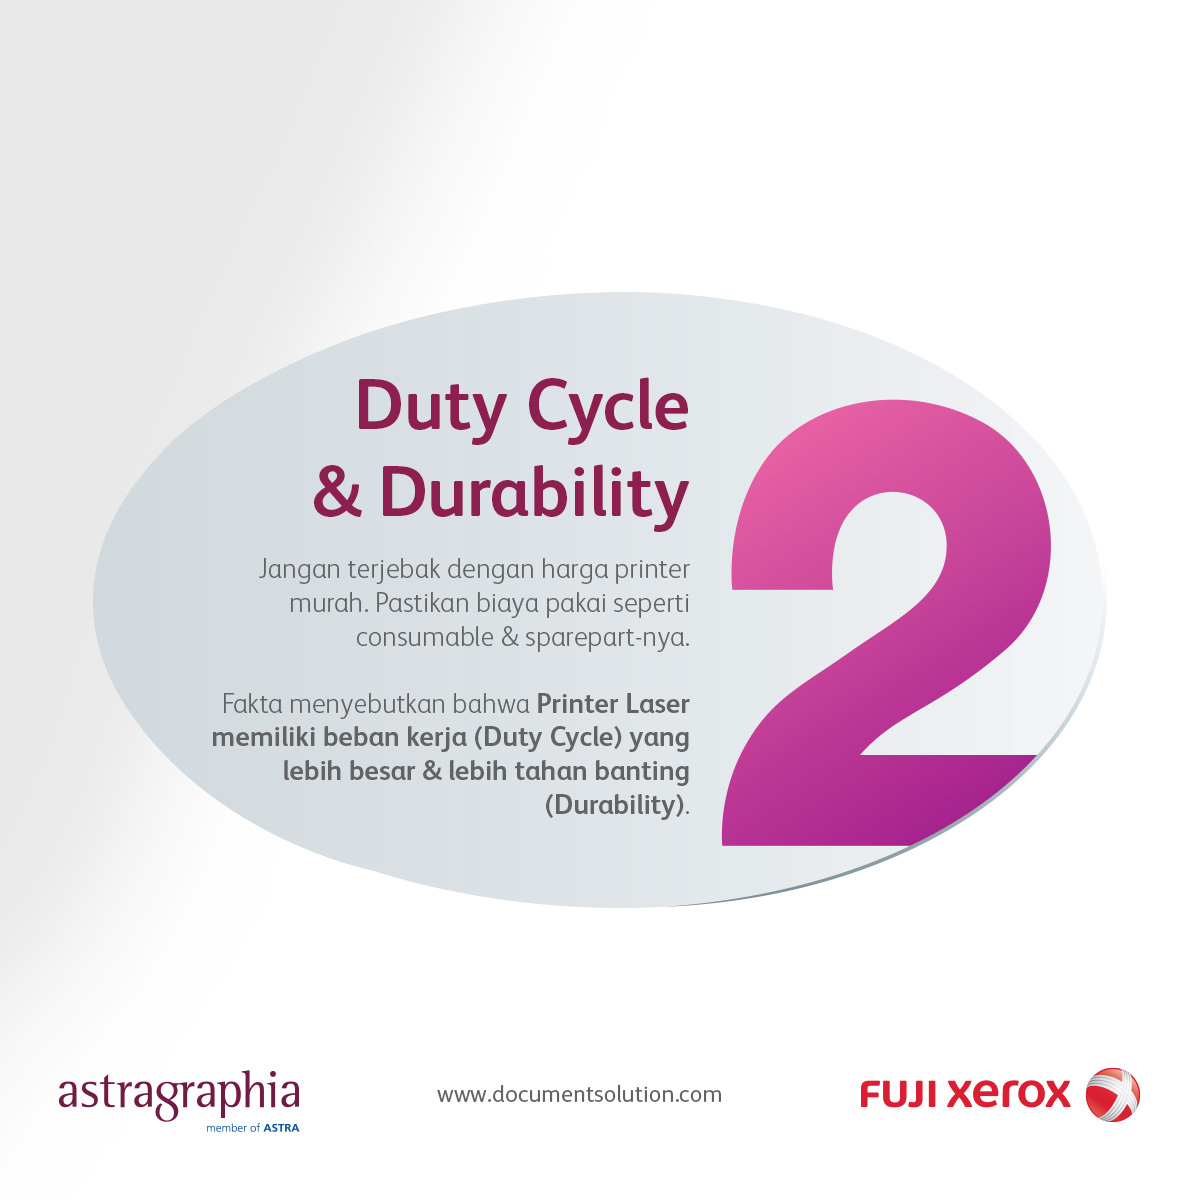 Image Tips 2 - Consumable, Duty Cycle dan Durability